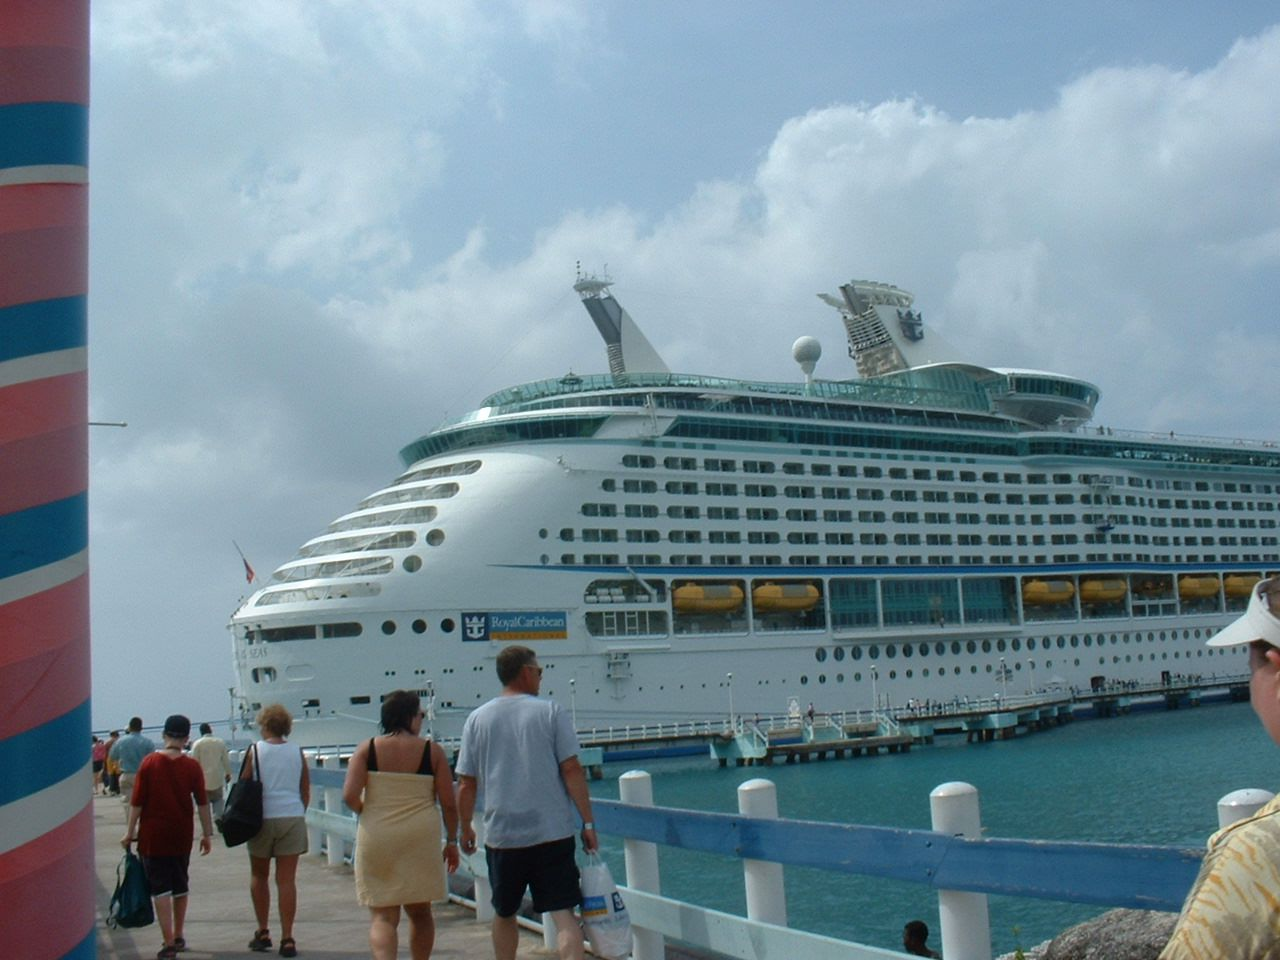 Royal Caribbean's Freedom of the Seas walking back from